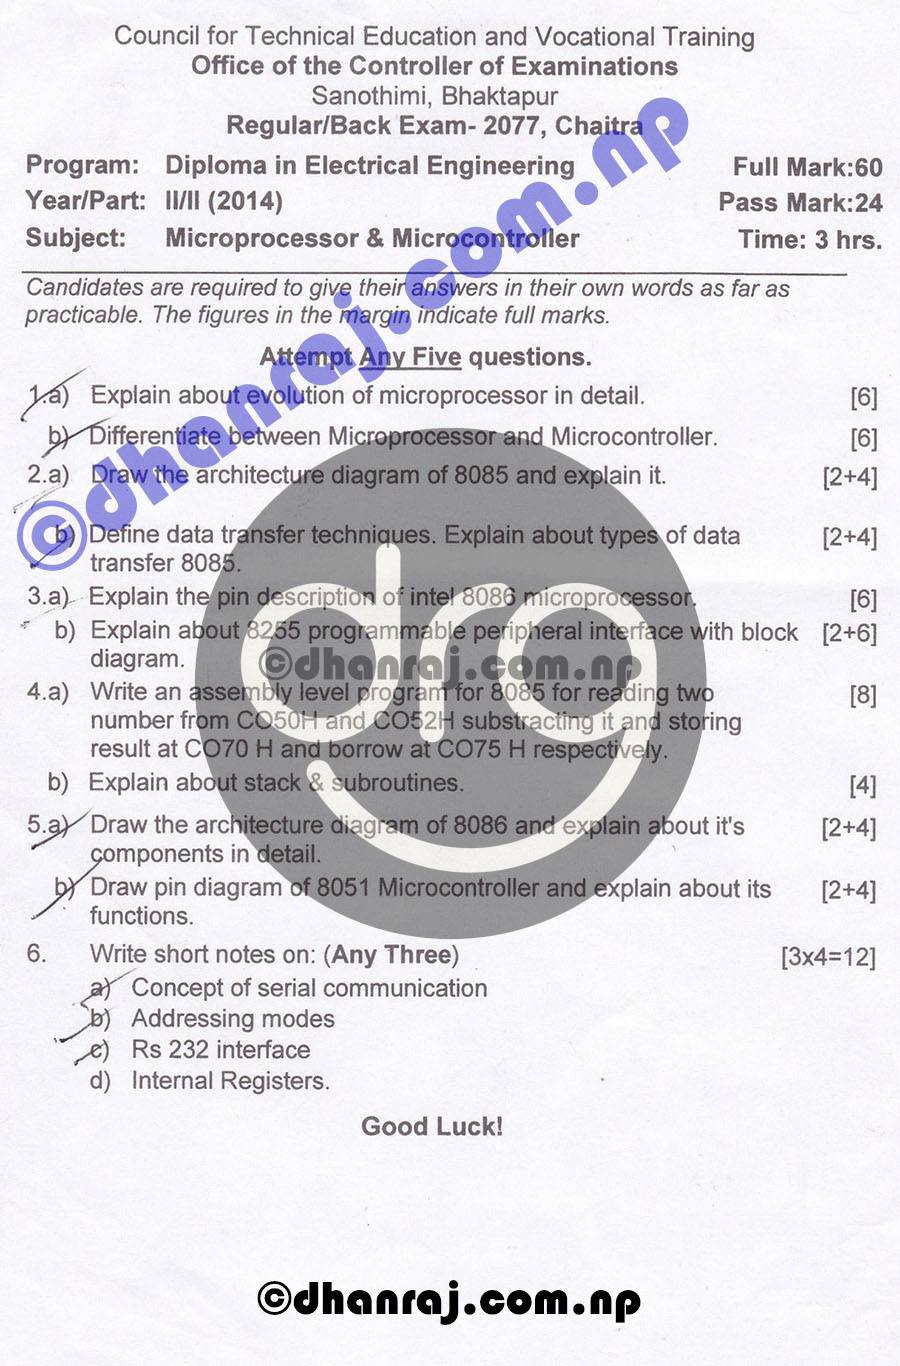 Microprocessors-and-Microcontroller-Question-Paper-2077-CTEVT-Diploma-2nd-Year-2nd-Part